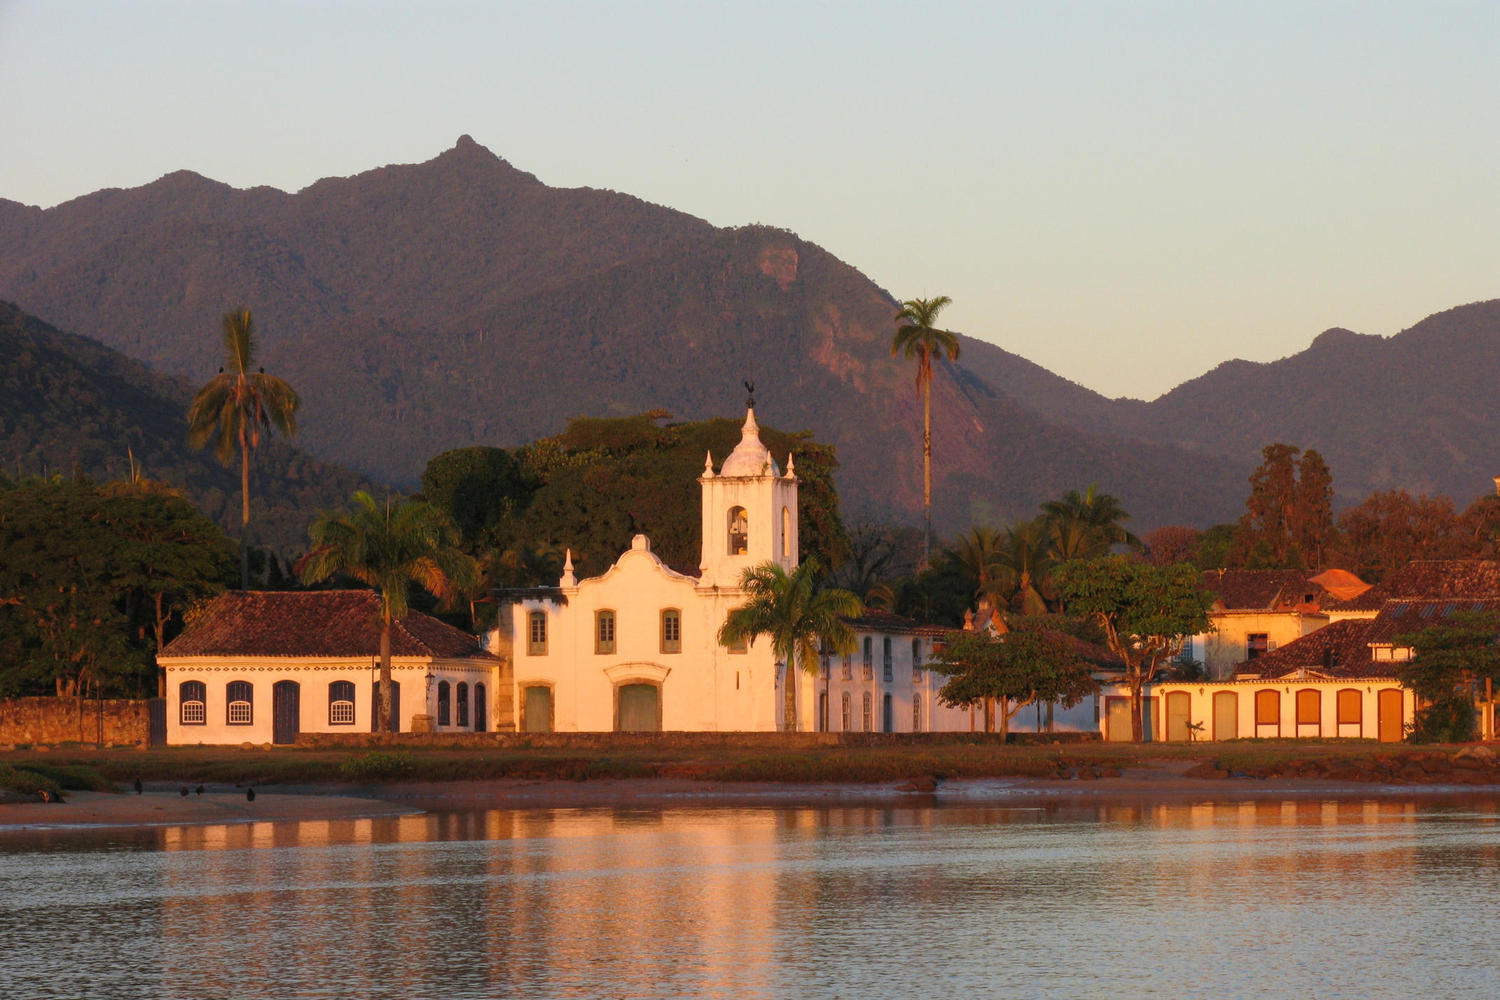 Sun setting on the colonial hear of Paraty, Brazil